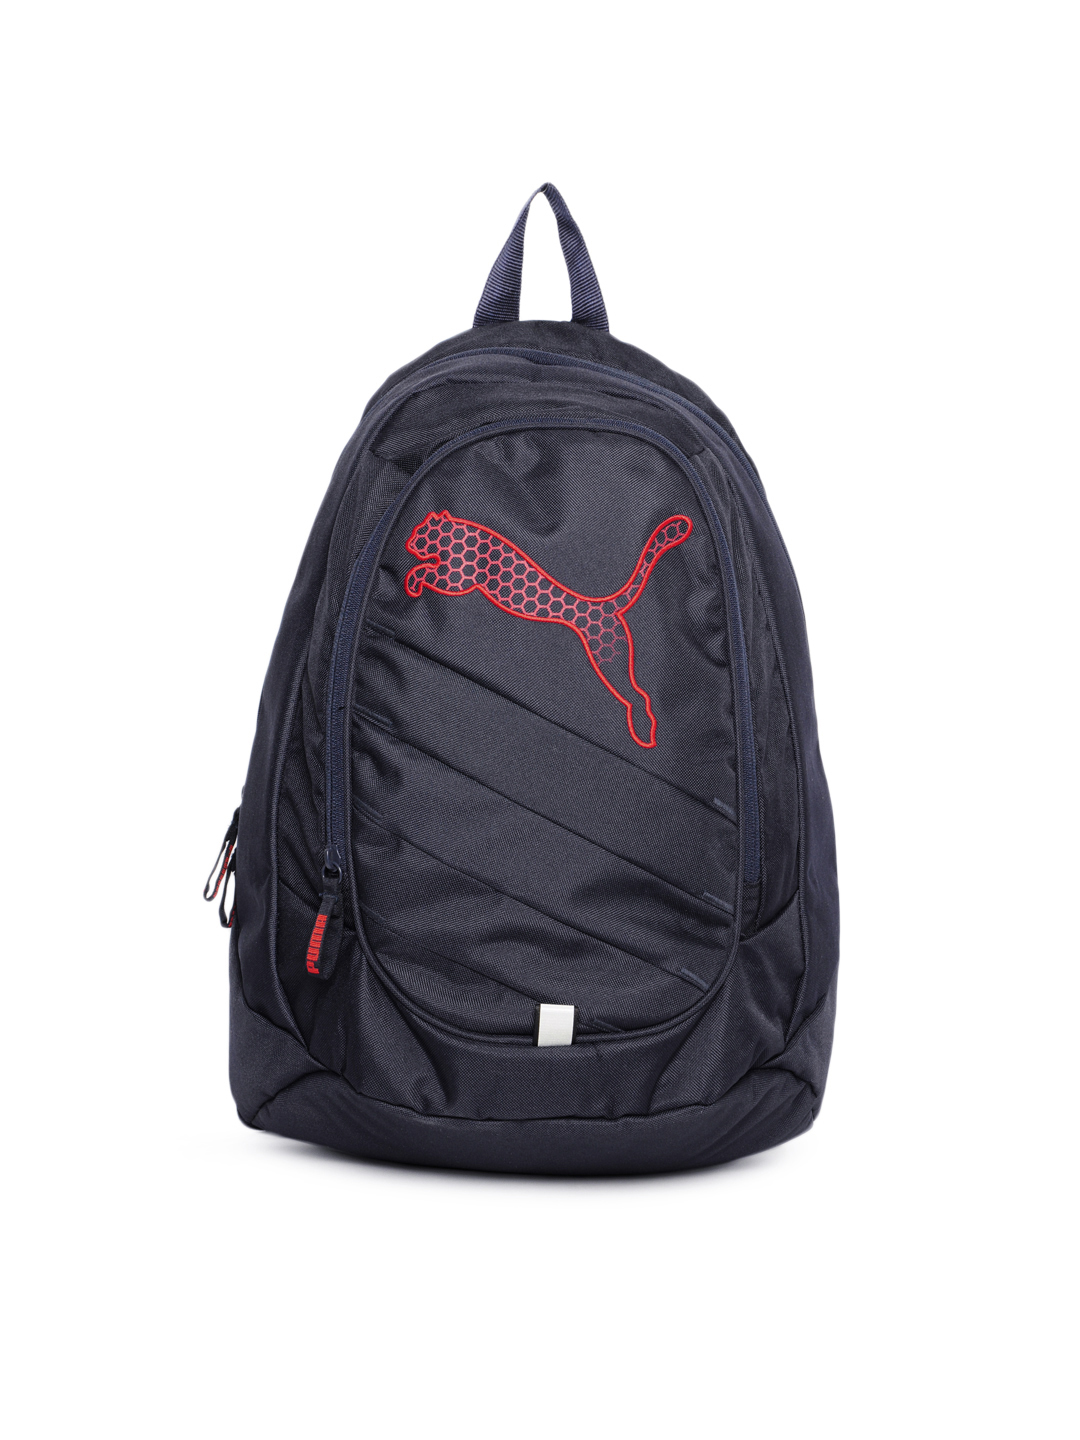 Puma Unisex Big Cat Navy Blue Backpack